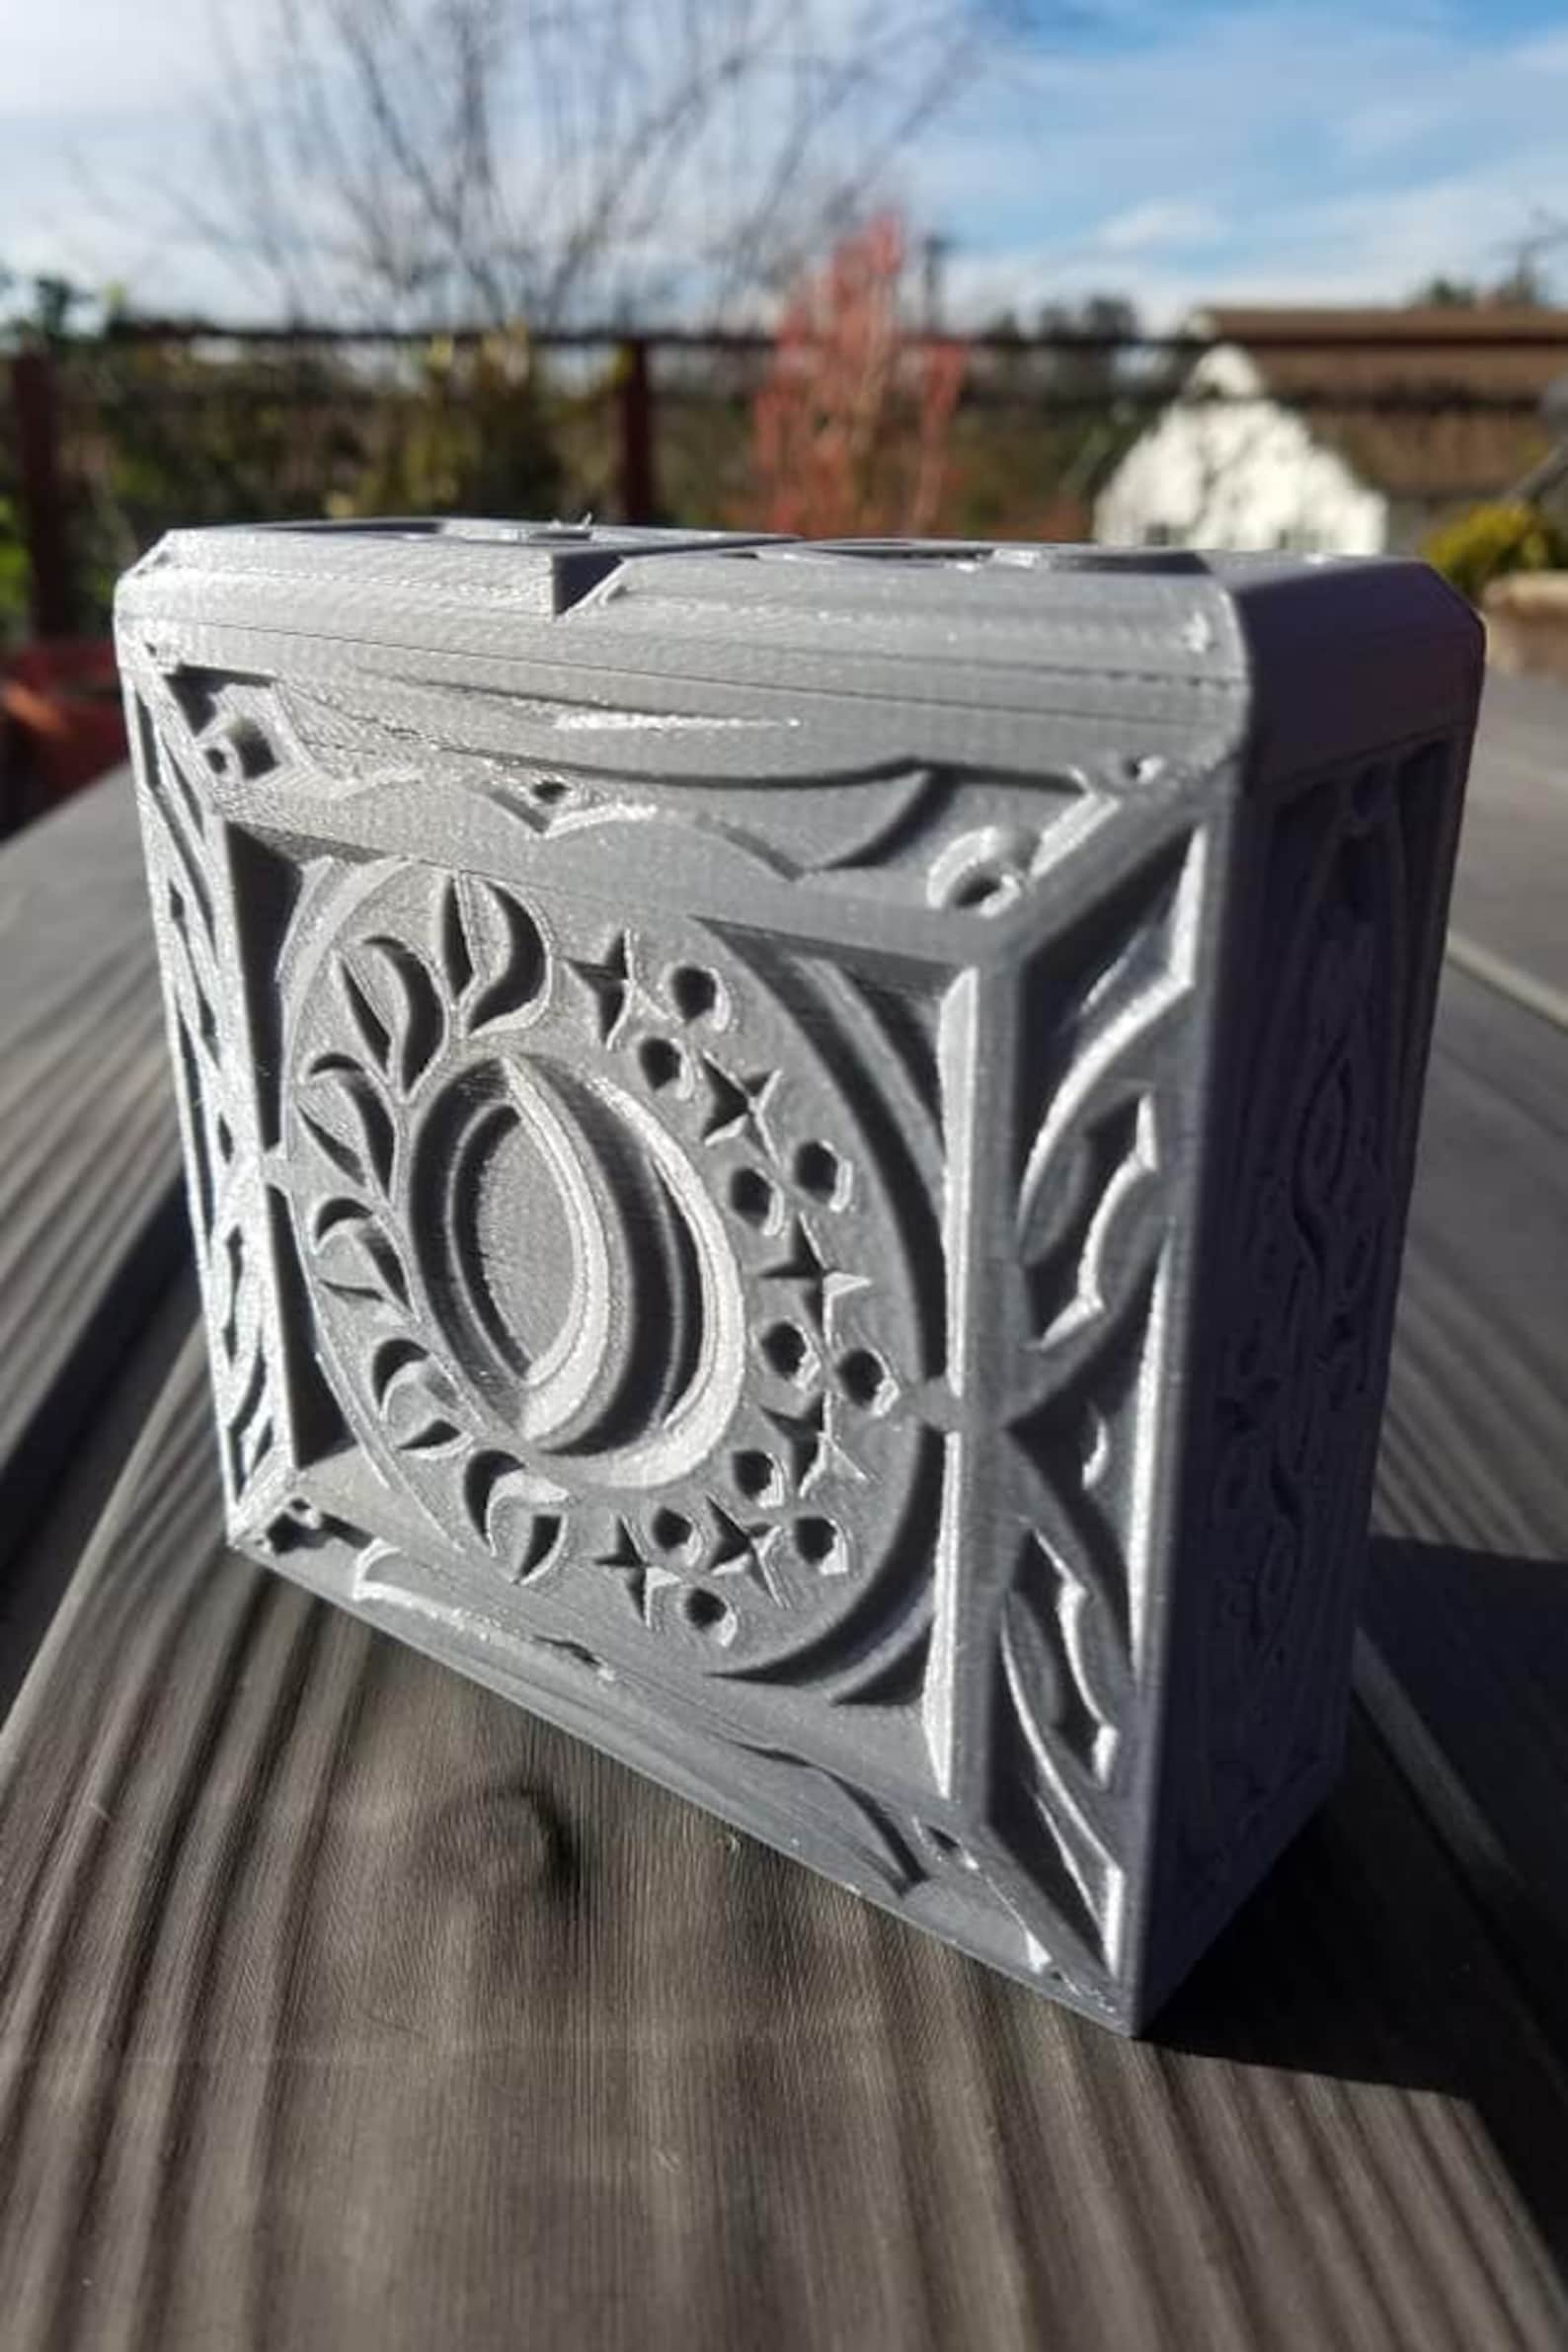 Magic The Gathering Deck and Dice Box - Sun And Moon